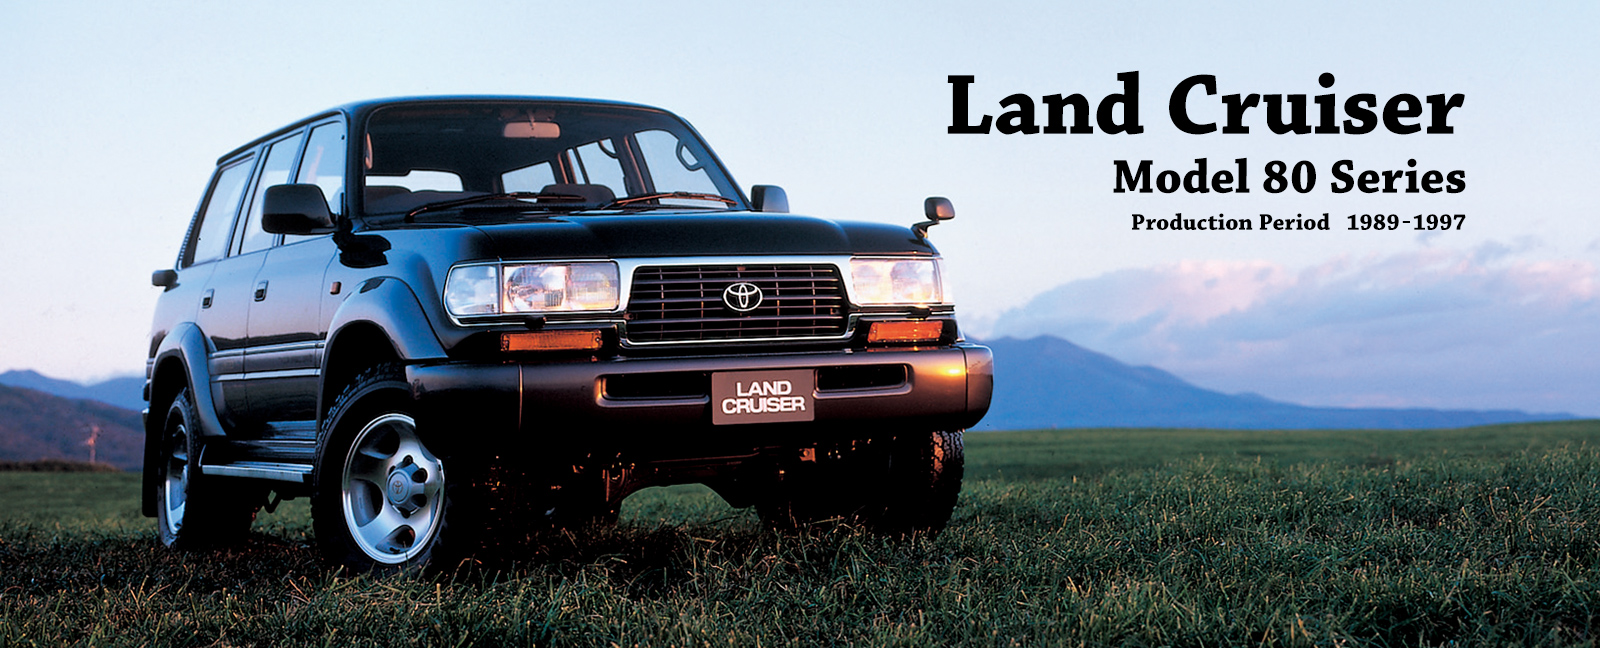 Vehicle Heritage, Land Cruiser, Model 80 Series